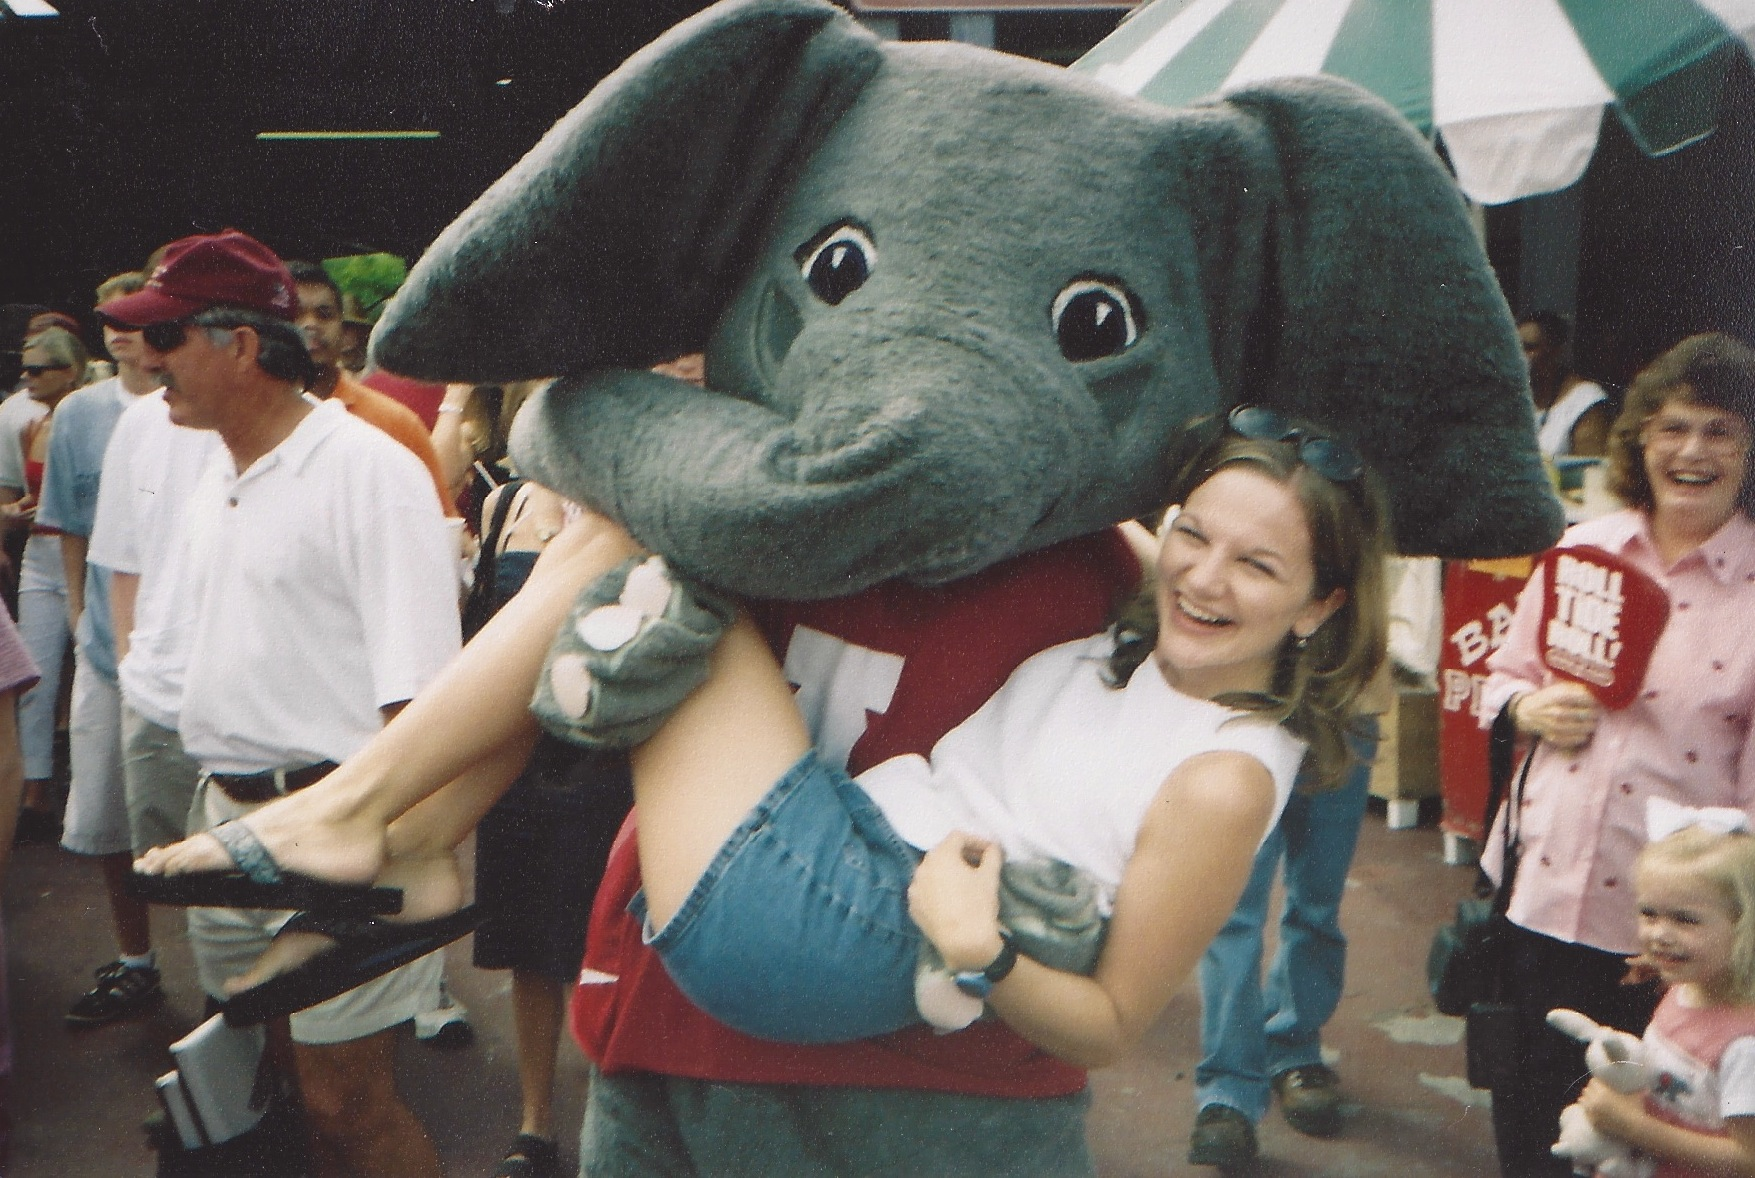 In college Jason (my husband) was the mascot. I think this is our best picture together ;)